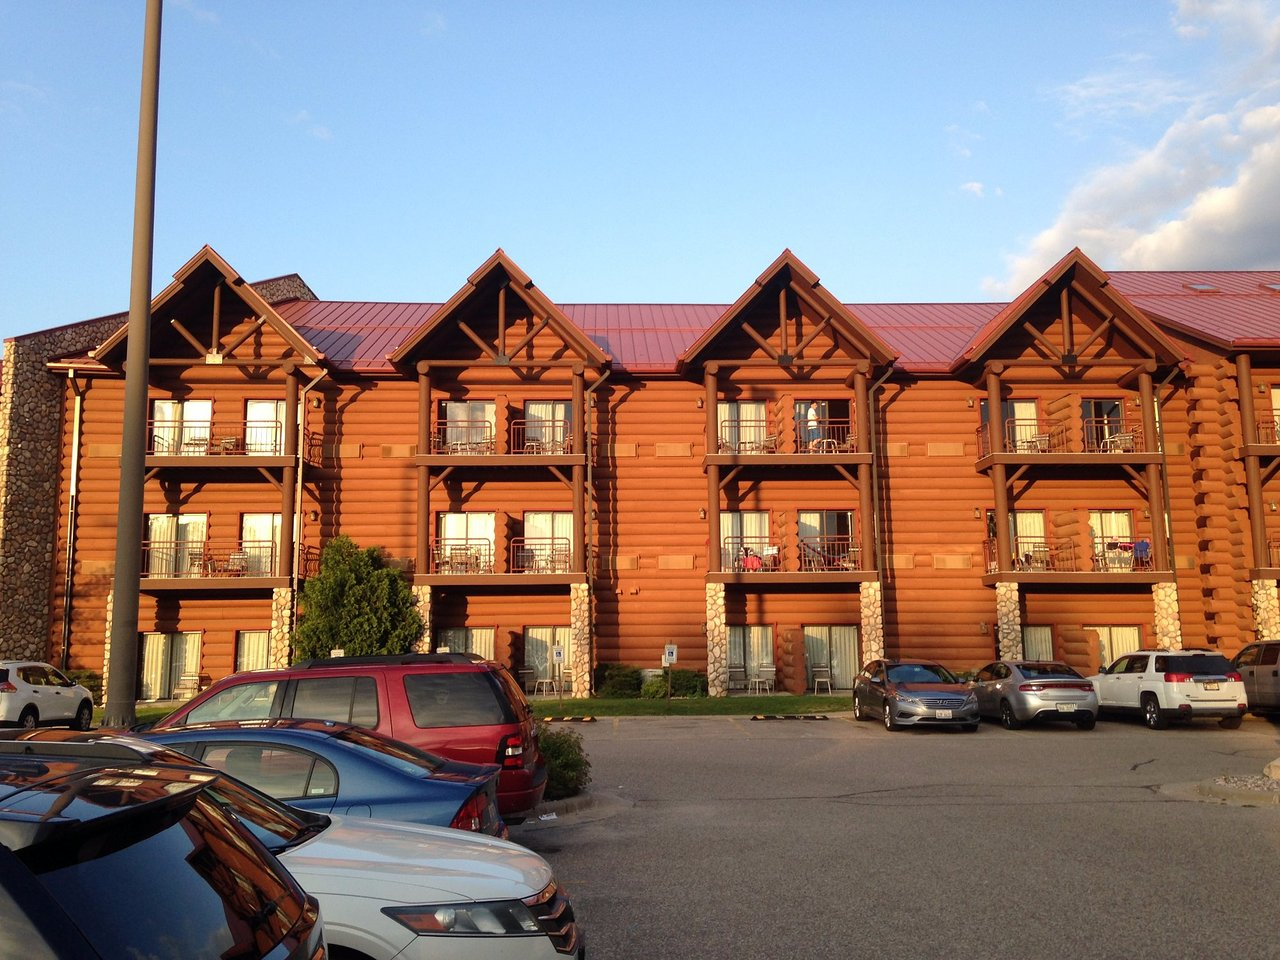 The 10 Best Last Minute Hotels in Wisconsin Dells 2019